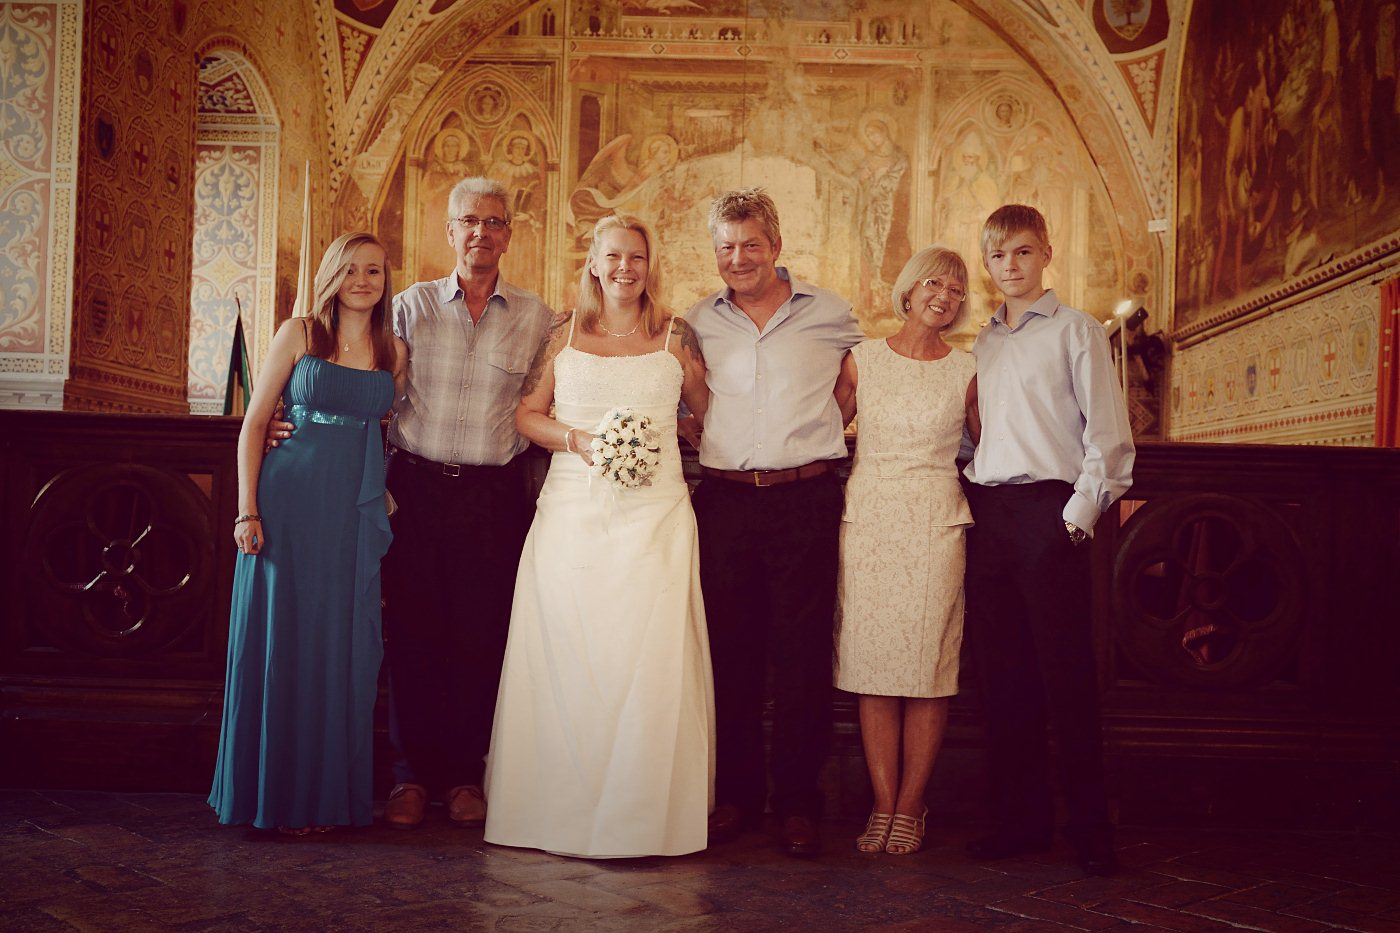 wedding photographer volterra_12.jpg